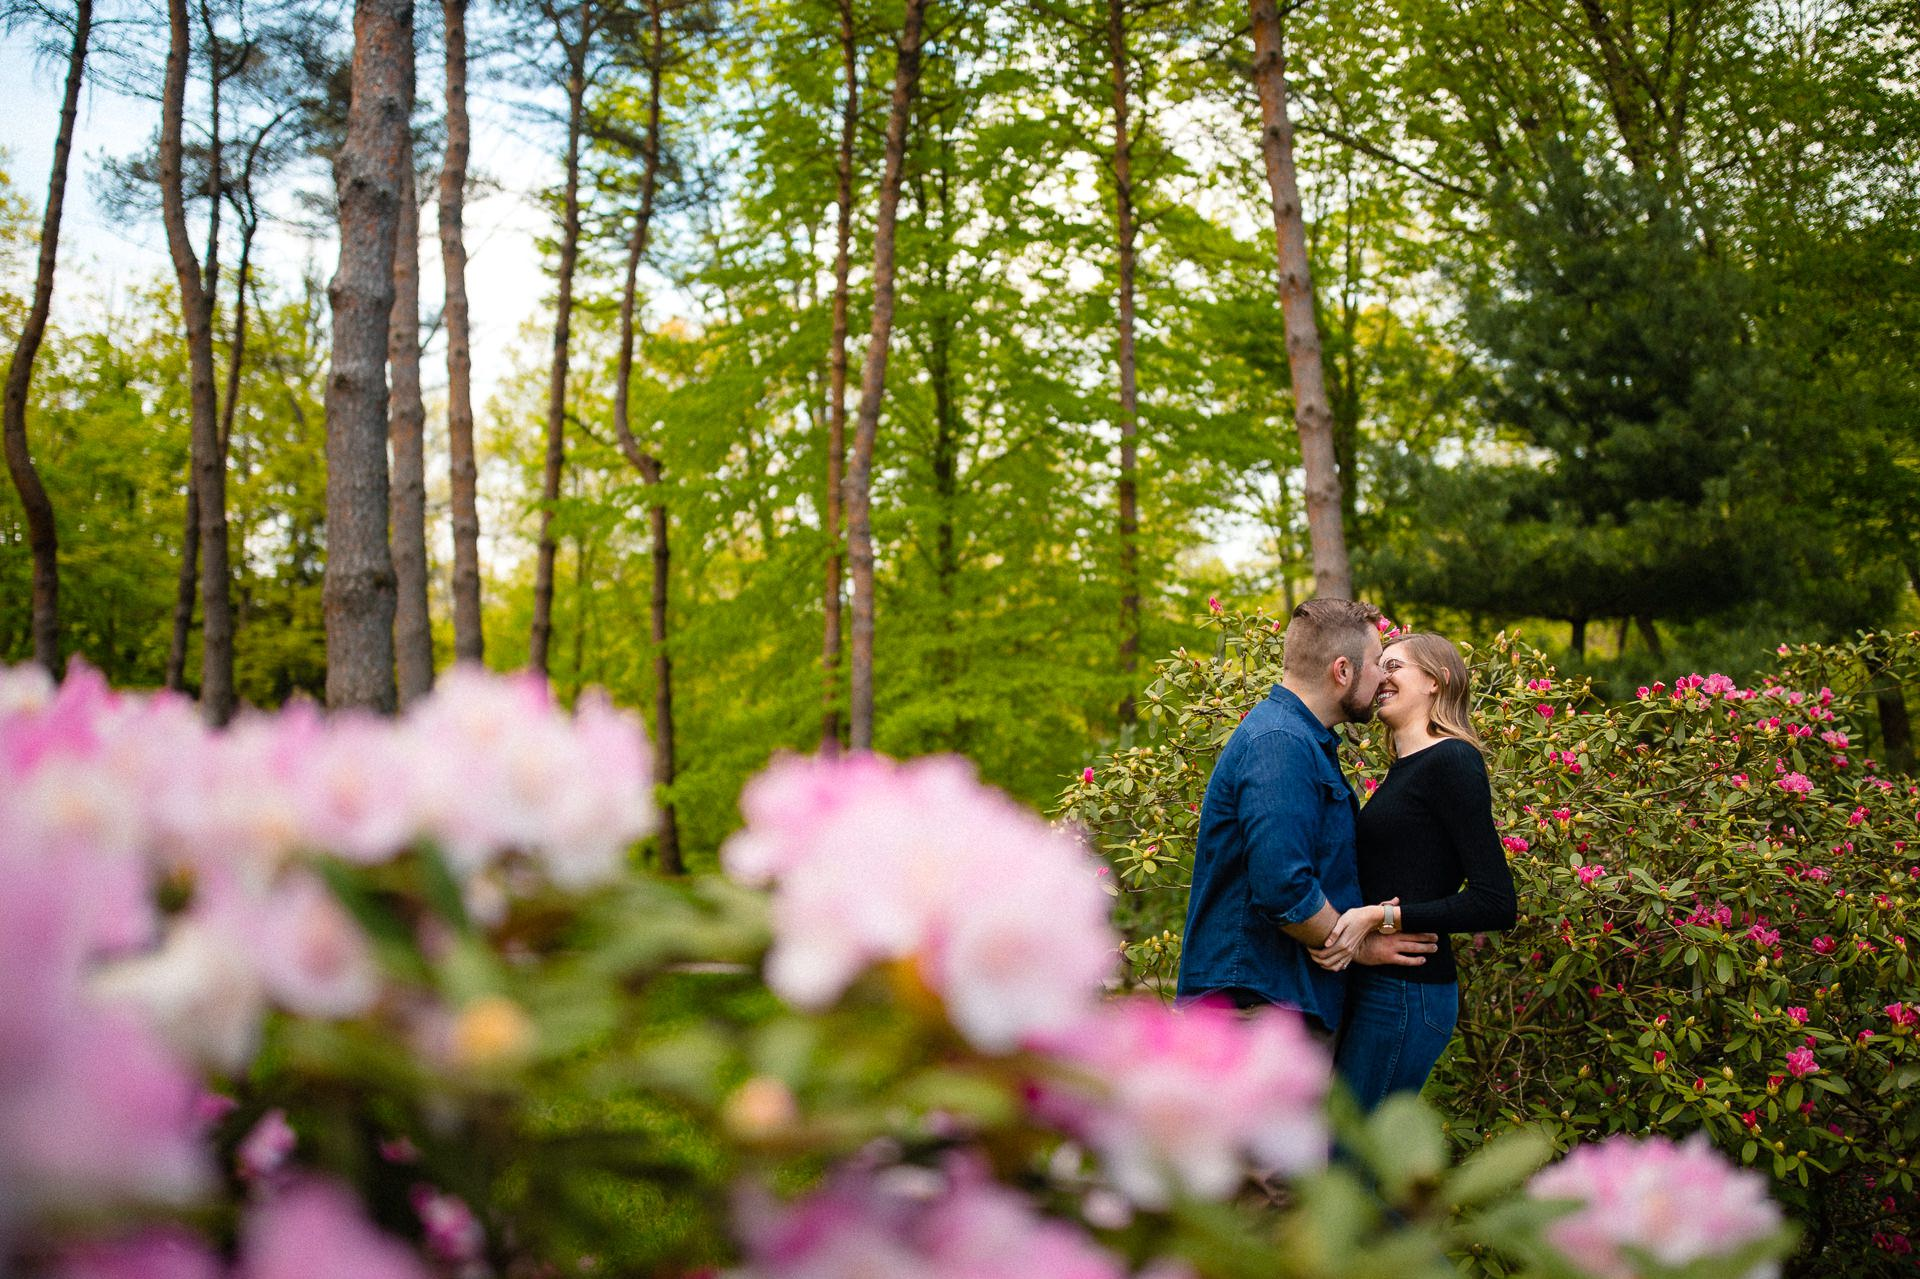 Spring Cleveland Botanical Gardens Engagement Photos 6.jpg